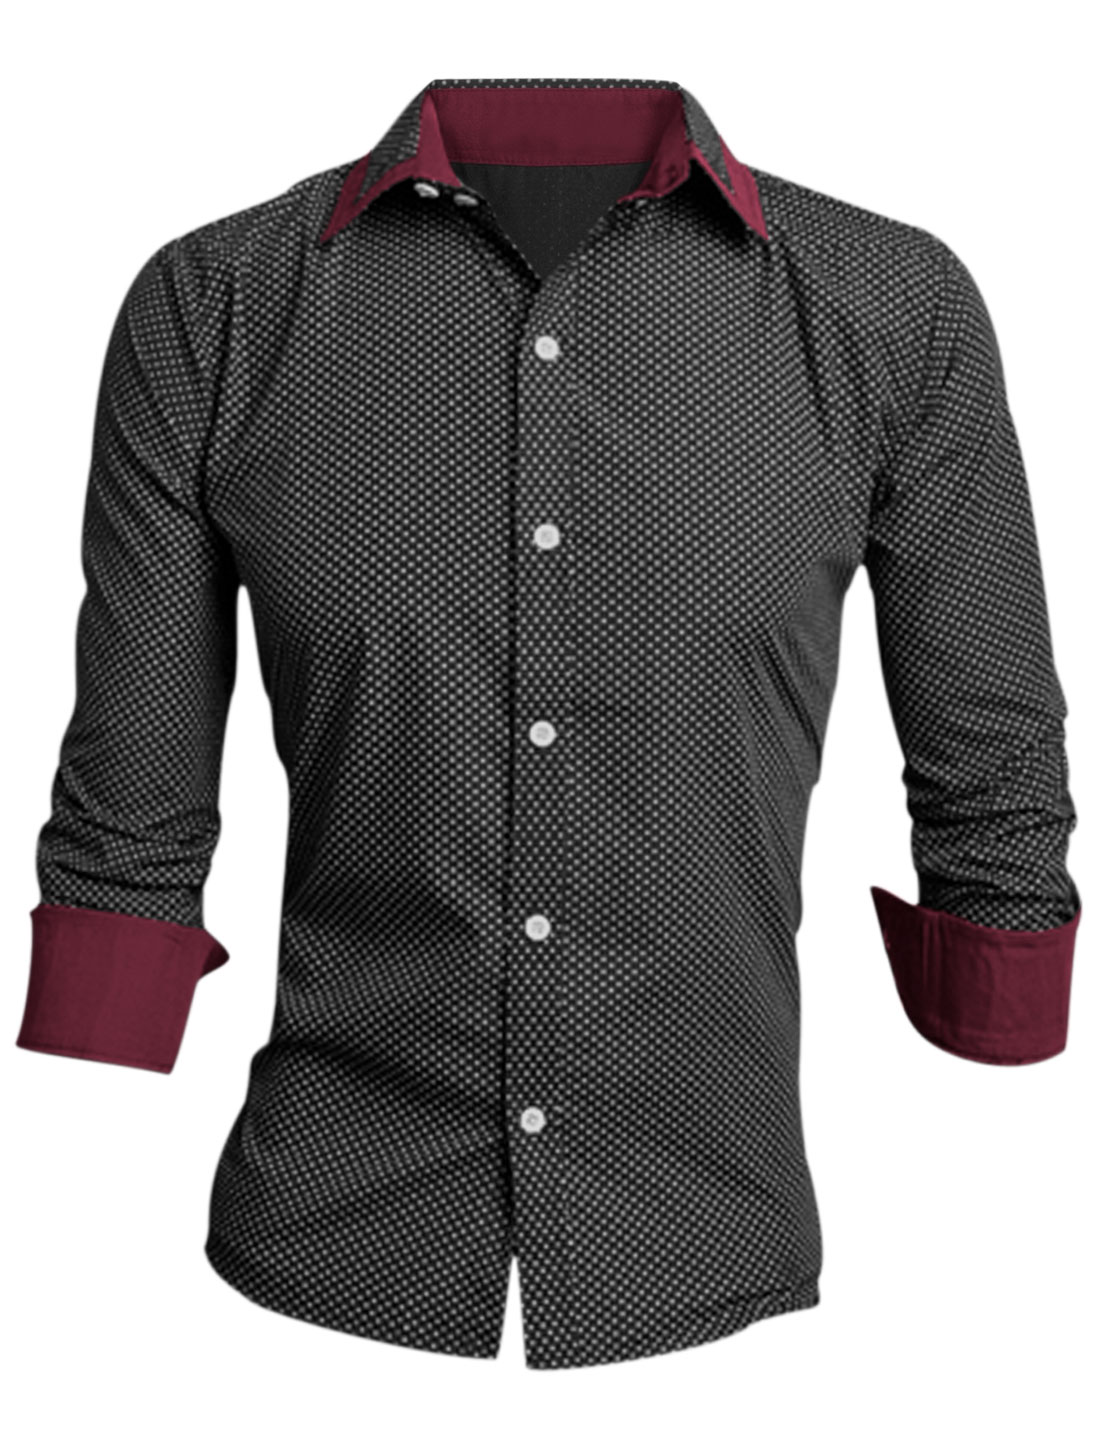 Men Point Collar Long Sleeve Dots Prints Casual Shirt Black M